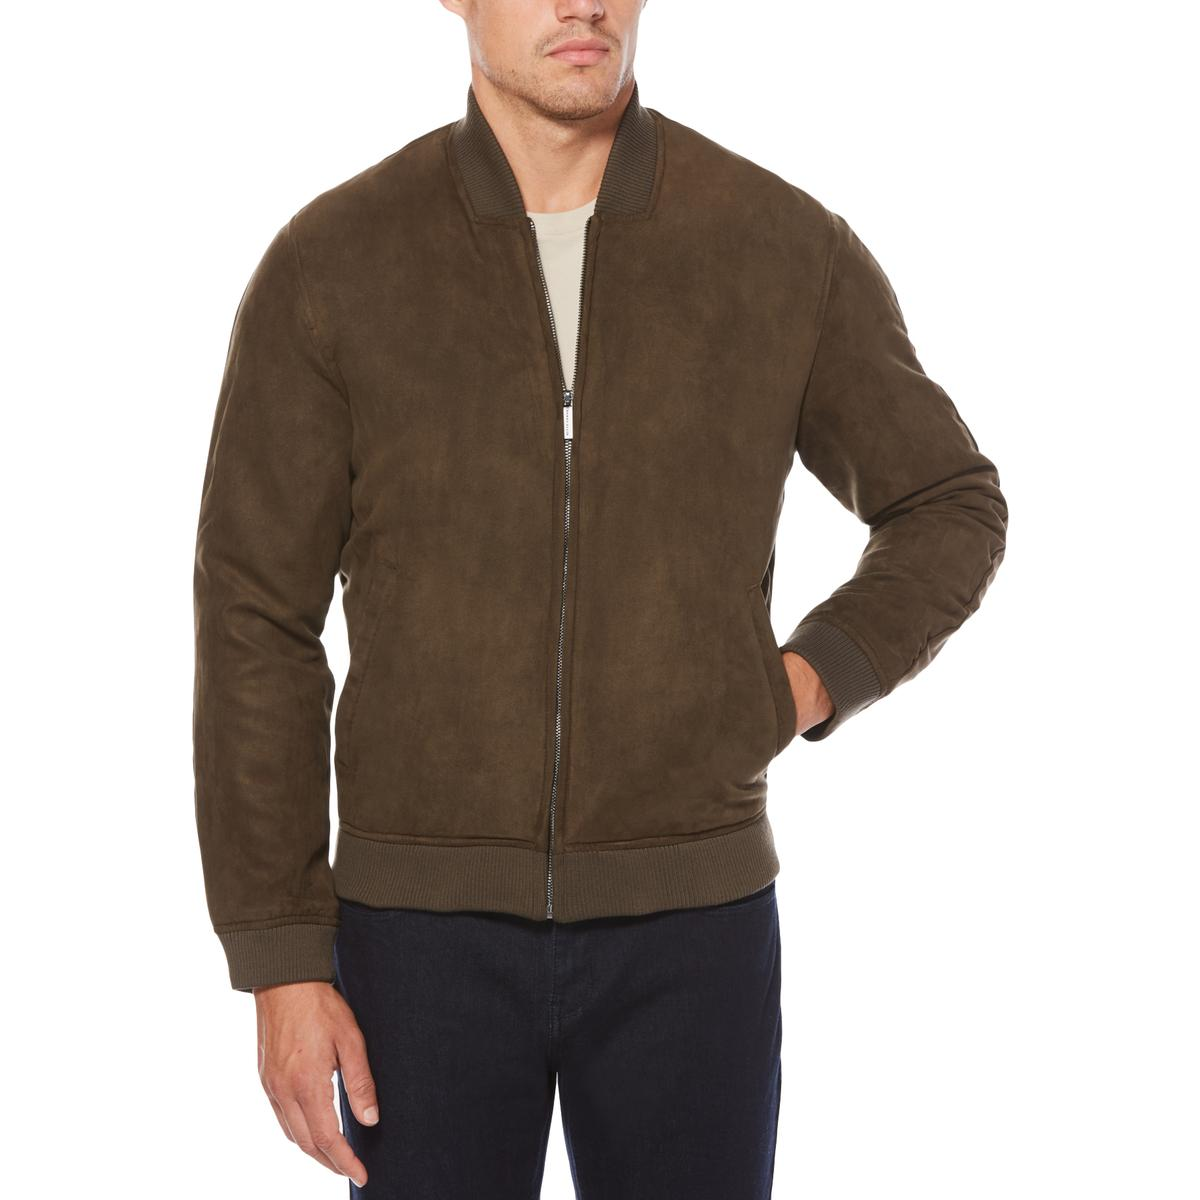 f4ef93f5fa Details about Perry Ellis Mens Winter Faux Suede Warm Bomber Jacket  Outerwear BHFO 0820